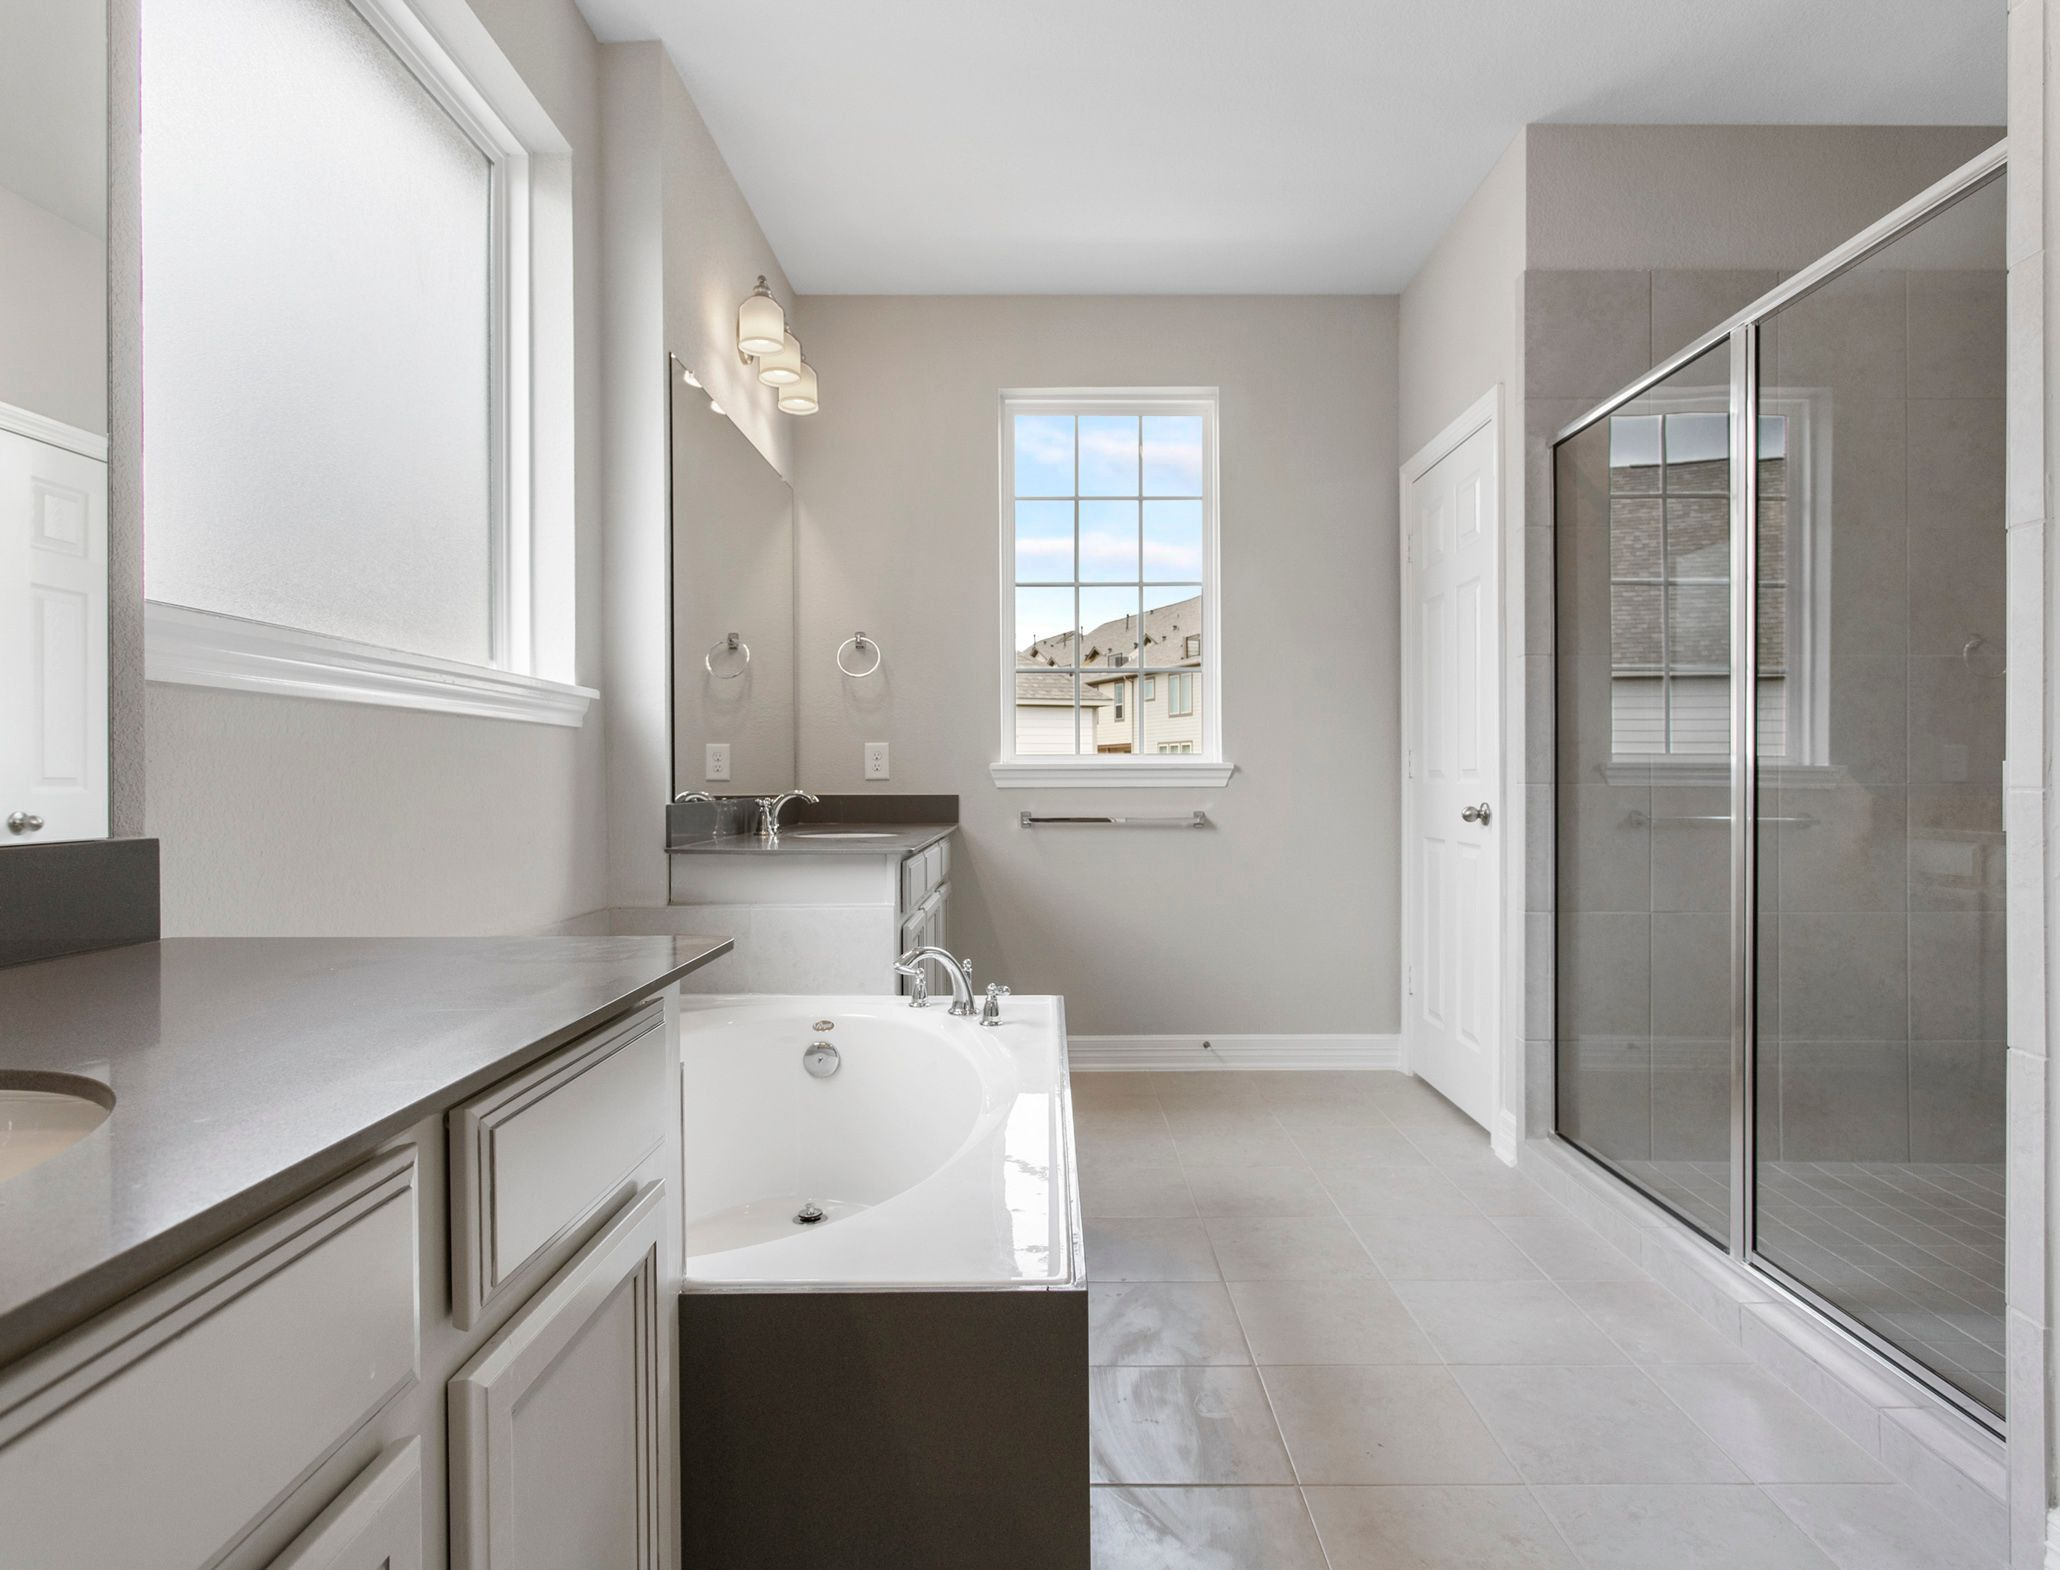 Bathroom featured in the Nicola By Ashton Woods in Houston, TX